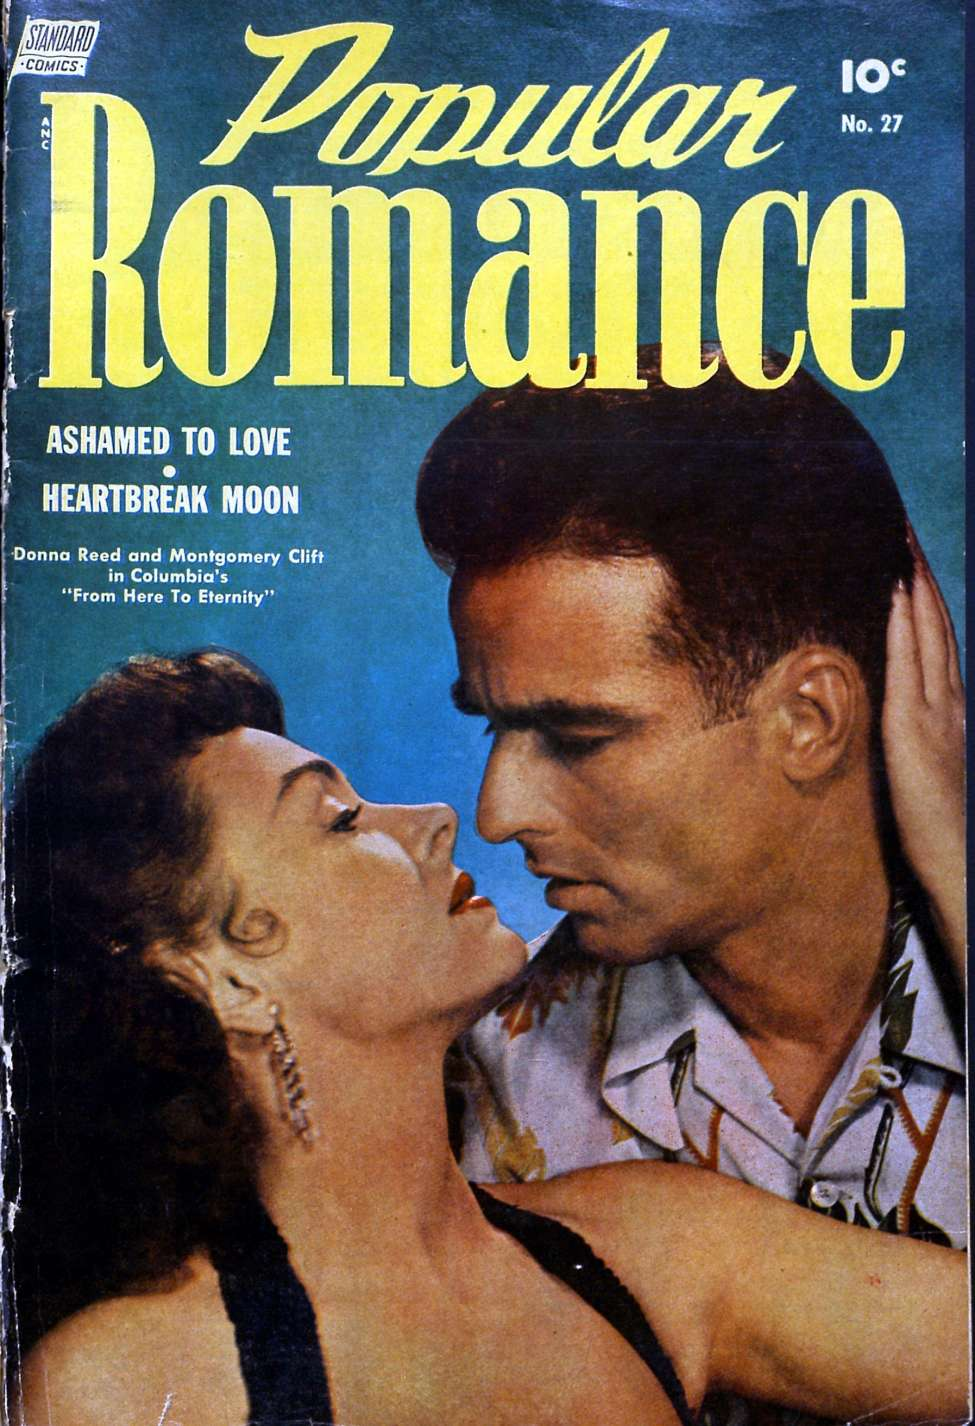 Comic Book Cover For Popular Romance #27